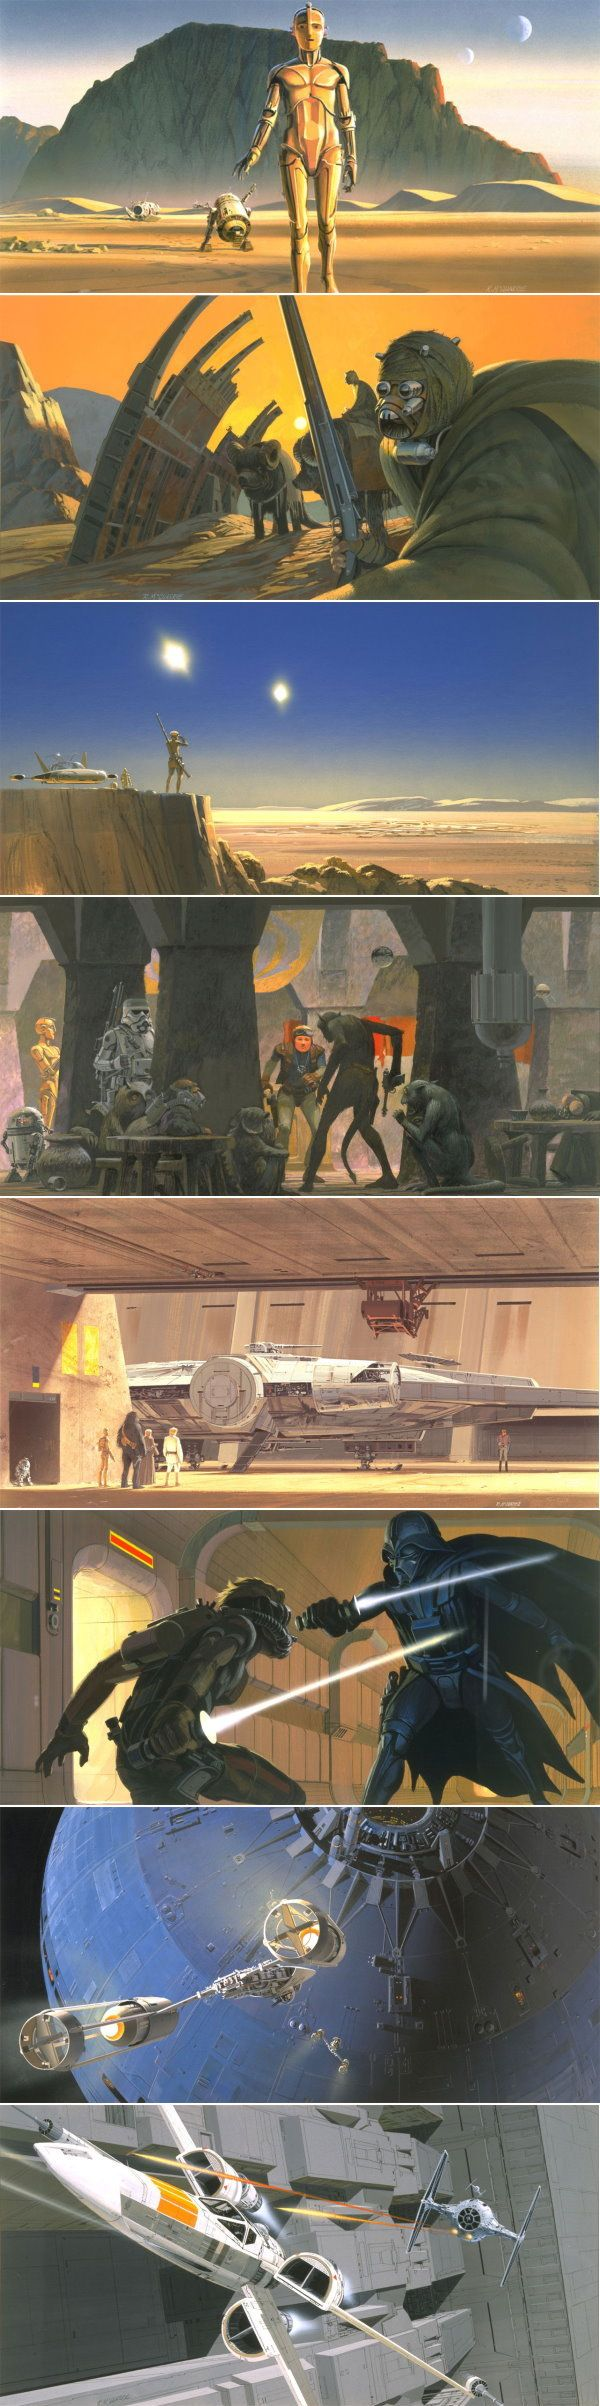 Star Wars Episode IV - Ralph McQuarrie Concepts